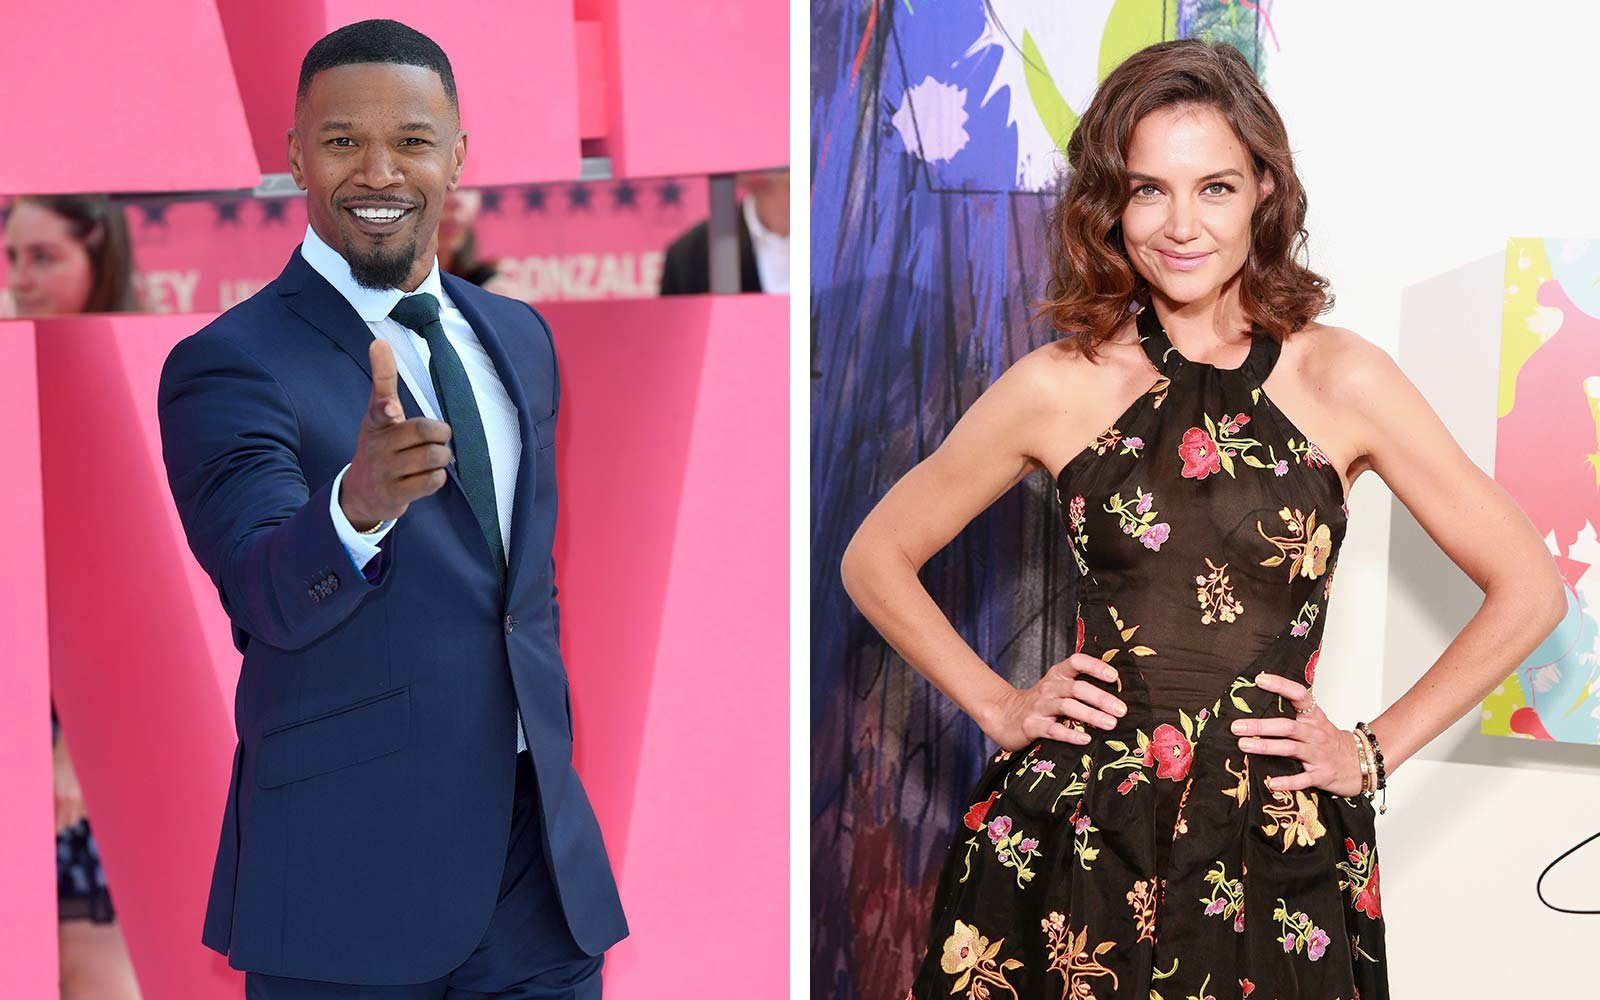 Divorce condition led to Katie Holmes, Jamie Foxx hiding relationship for years